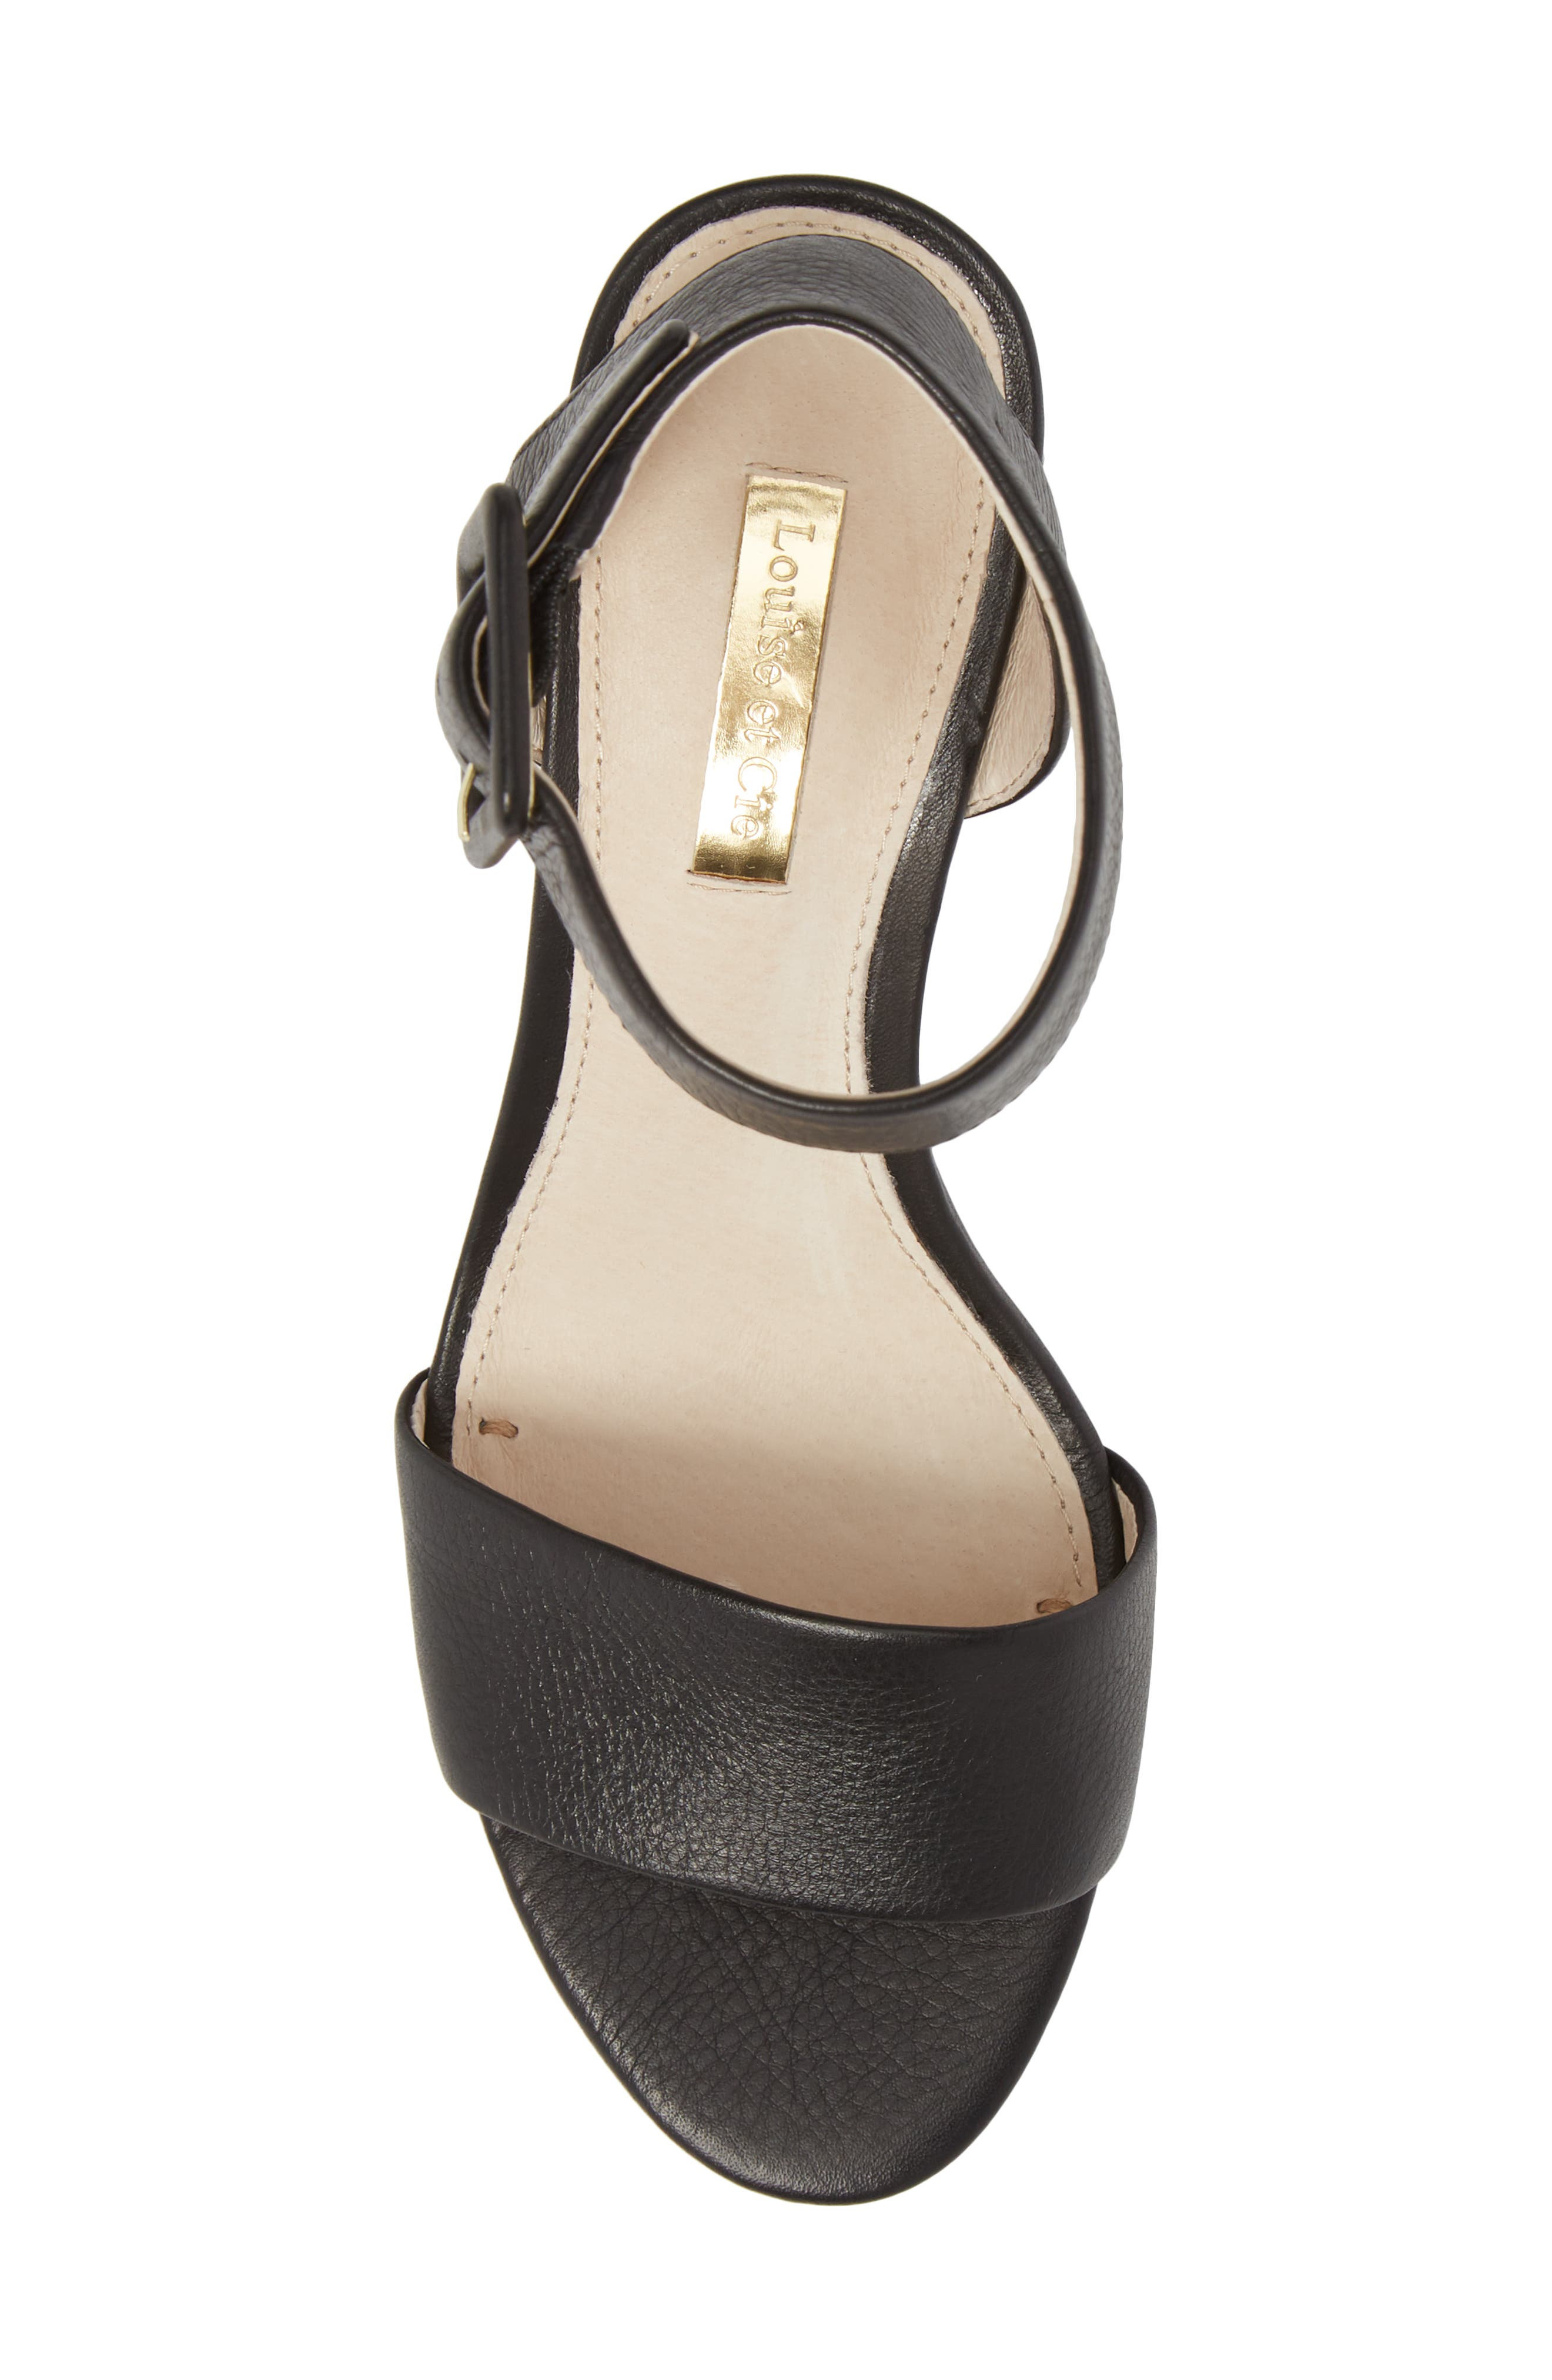 LOUISE ET CIE, Punya Wedge Sandal, Alternate thumbnail 5, color, BLACK LEATHER